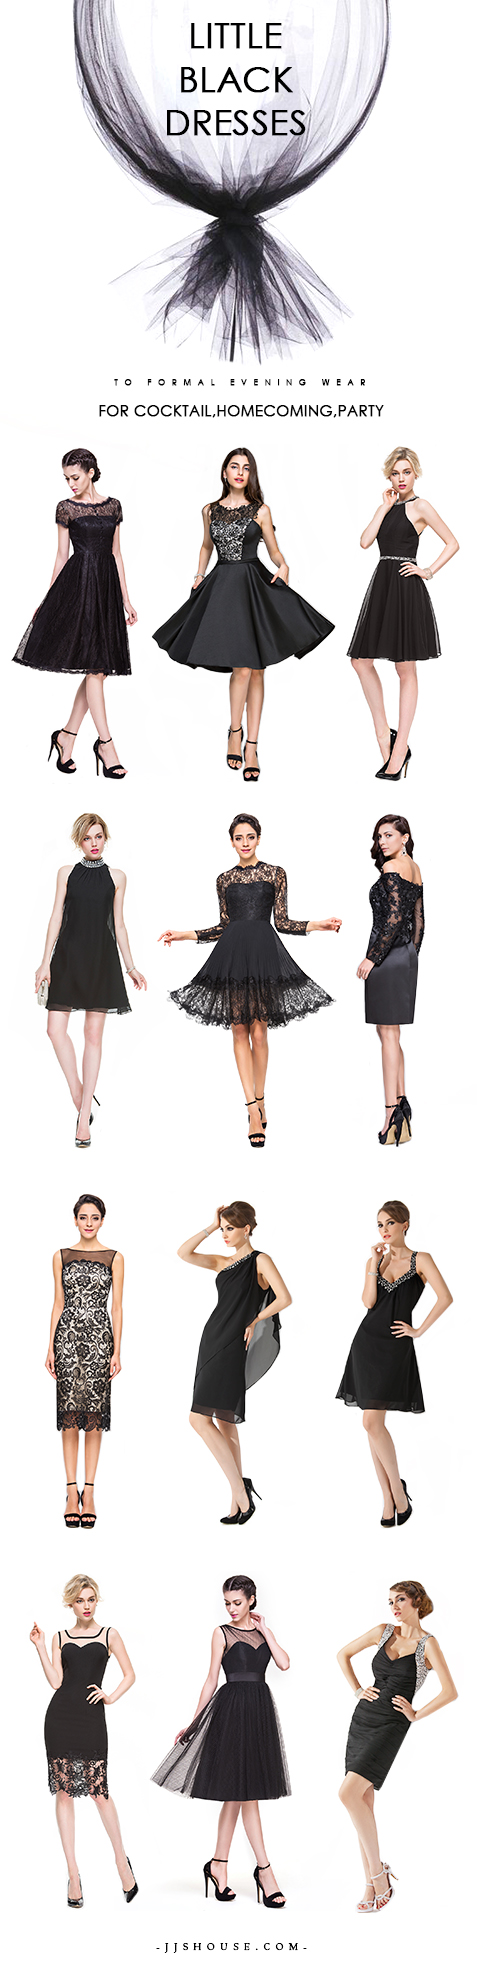 Little black dress for wedding party  Little Black Dresses to formal evening wear For CocktailHomecoming